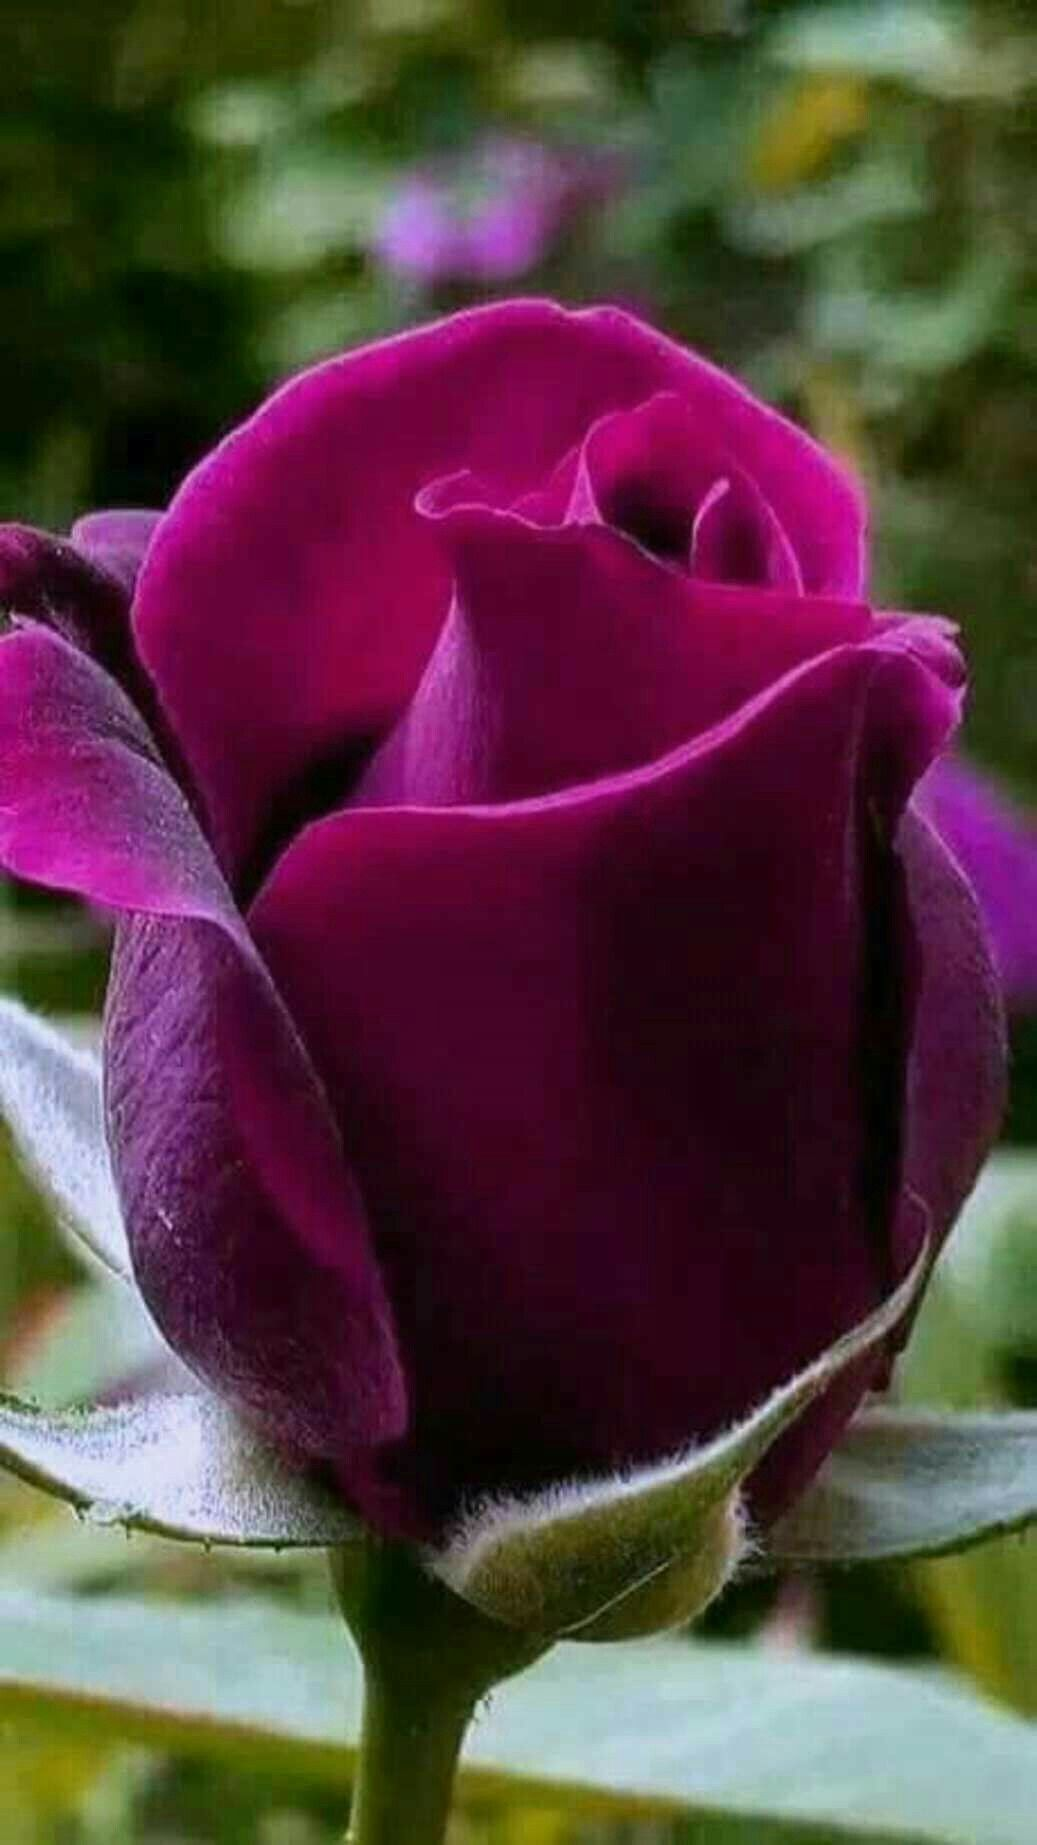 Pin by l trang on hnh nh pinterest beautiful flowers flowers pretty flowers amazing flowers beautiful roses pink roses lavender roses purple mightylinksfo